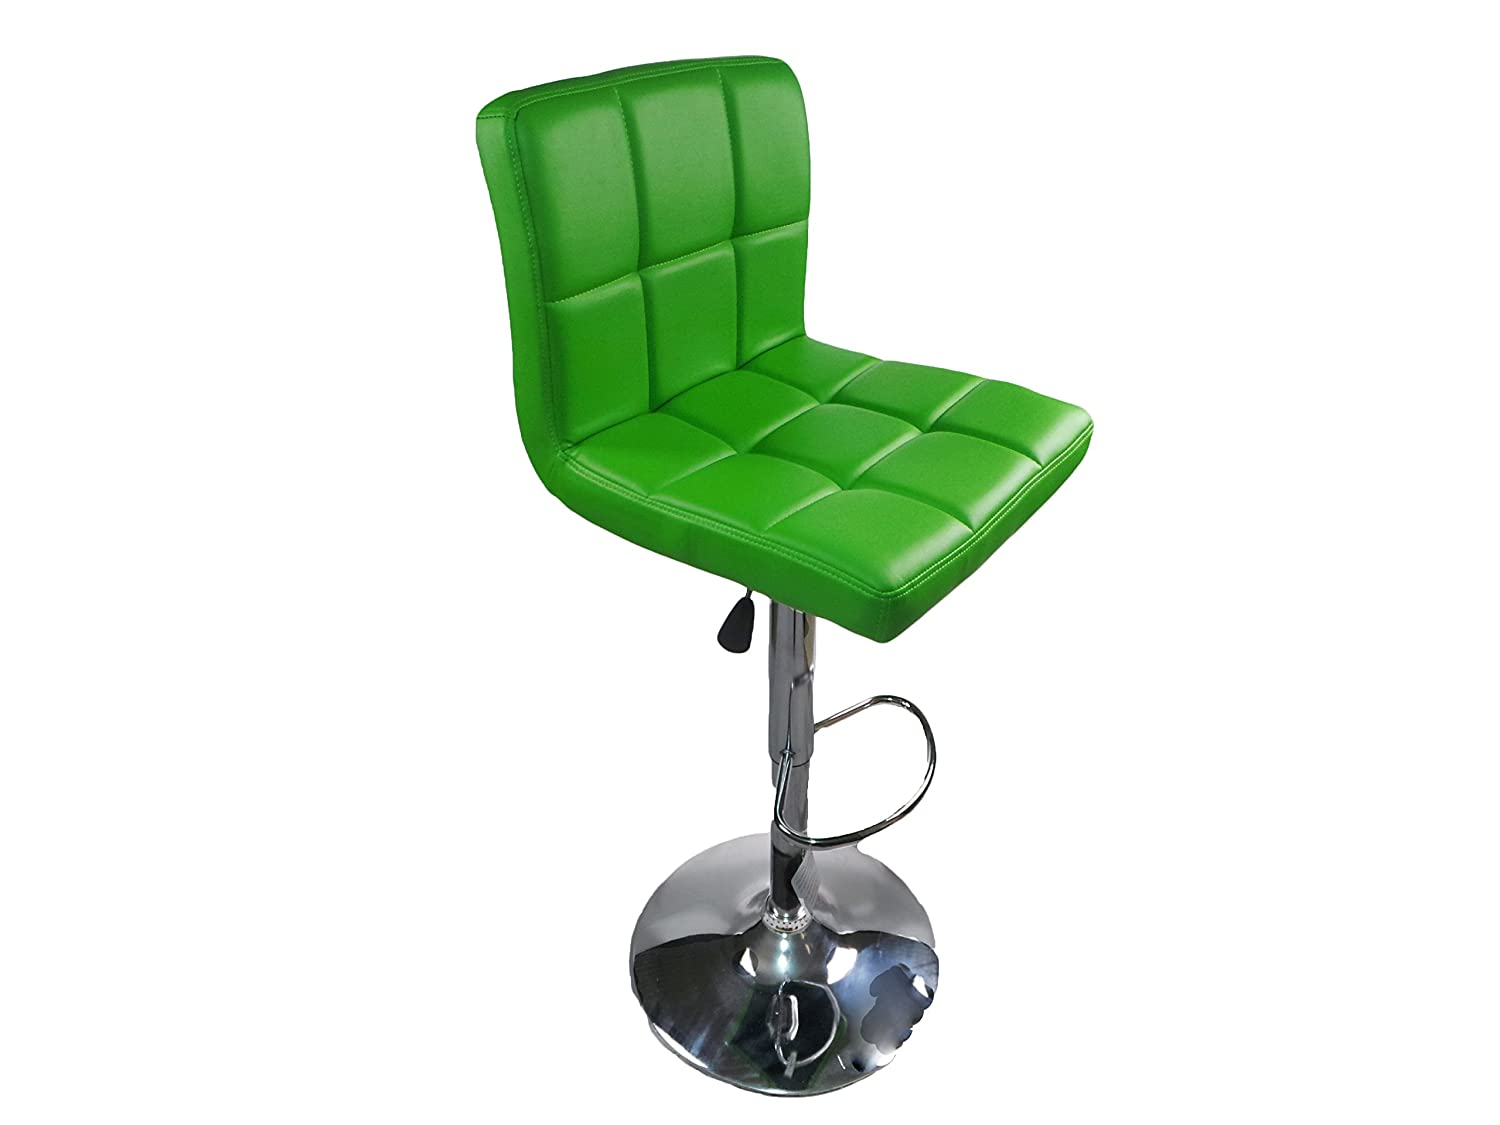 Lime Green Decor-It Classic Dense Luxury Faux Leather Swivel Breakfast Bar Stools chairs chrome stools high chair bar barbers hairdressers seat ...  sc 1 st  Amazon UK & Lime Green Decor-It Classic Dense Luxury Faux Leather Swivel ... islam-shia.org